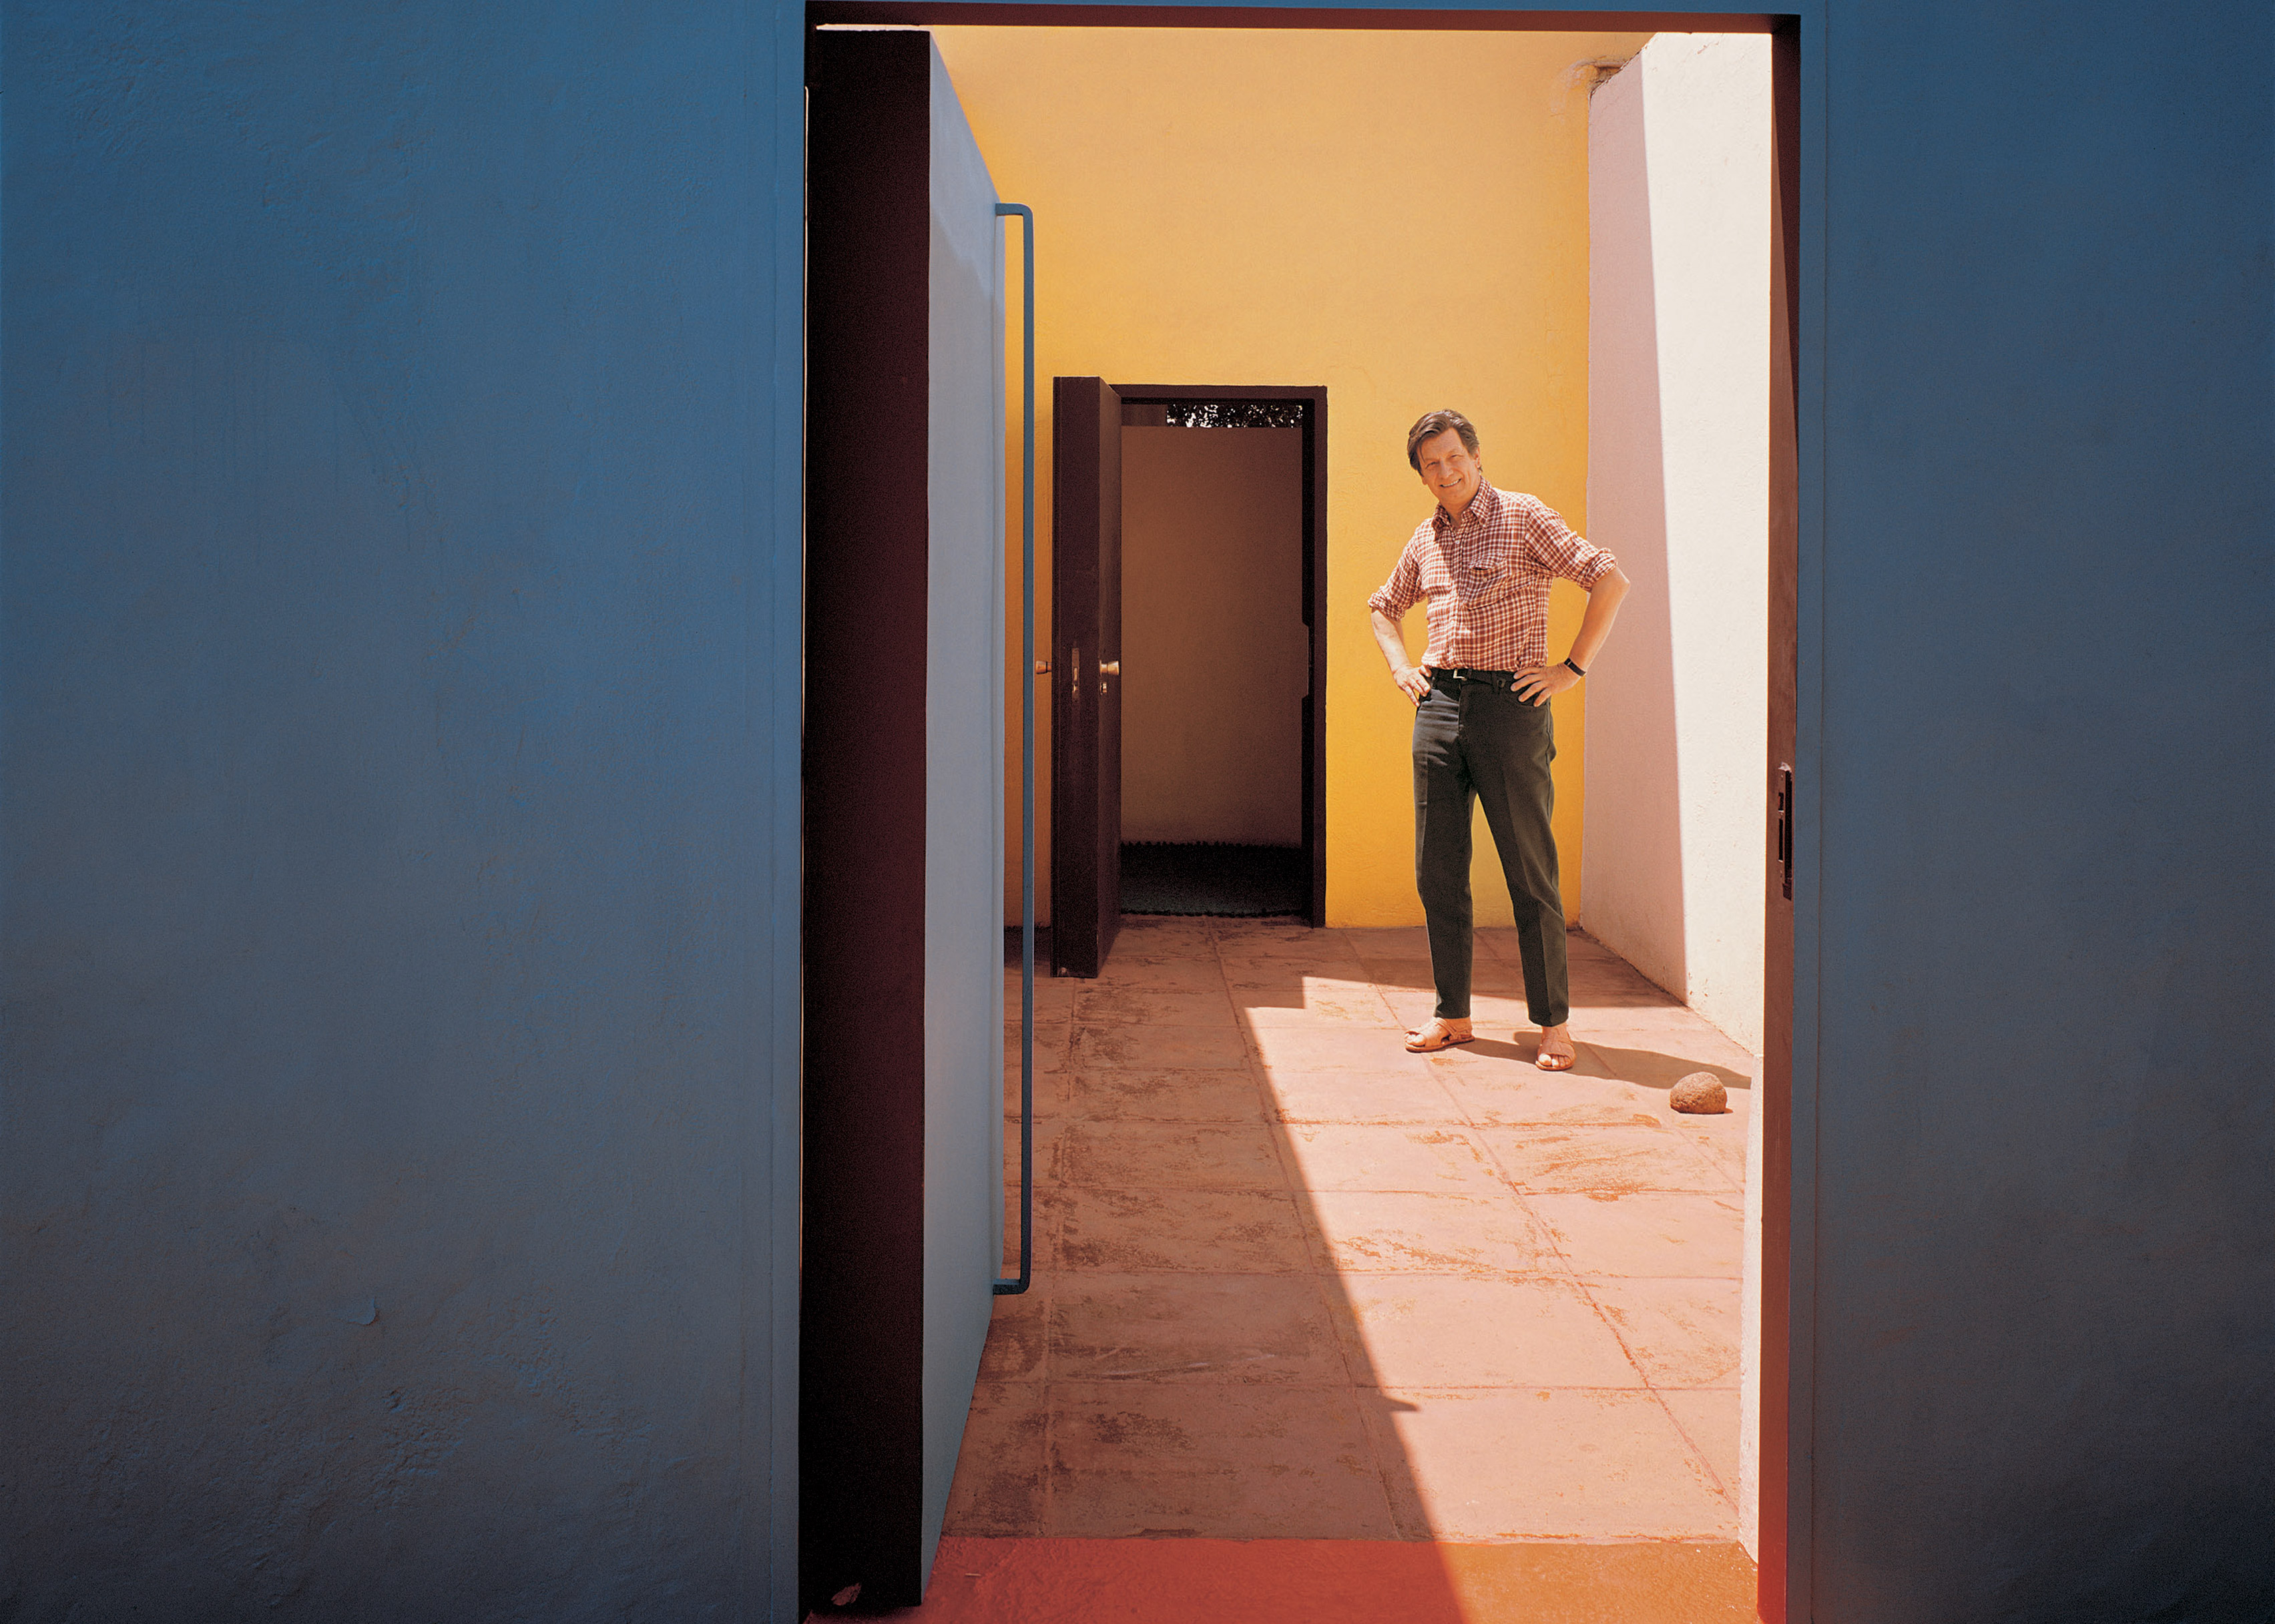 Mathias Goeritz at his home, which was co-designed with Ricardo Legorreta, Cuernavaca, Mexico, photographed in 1973